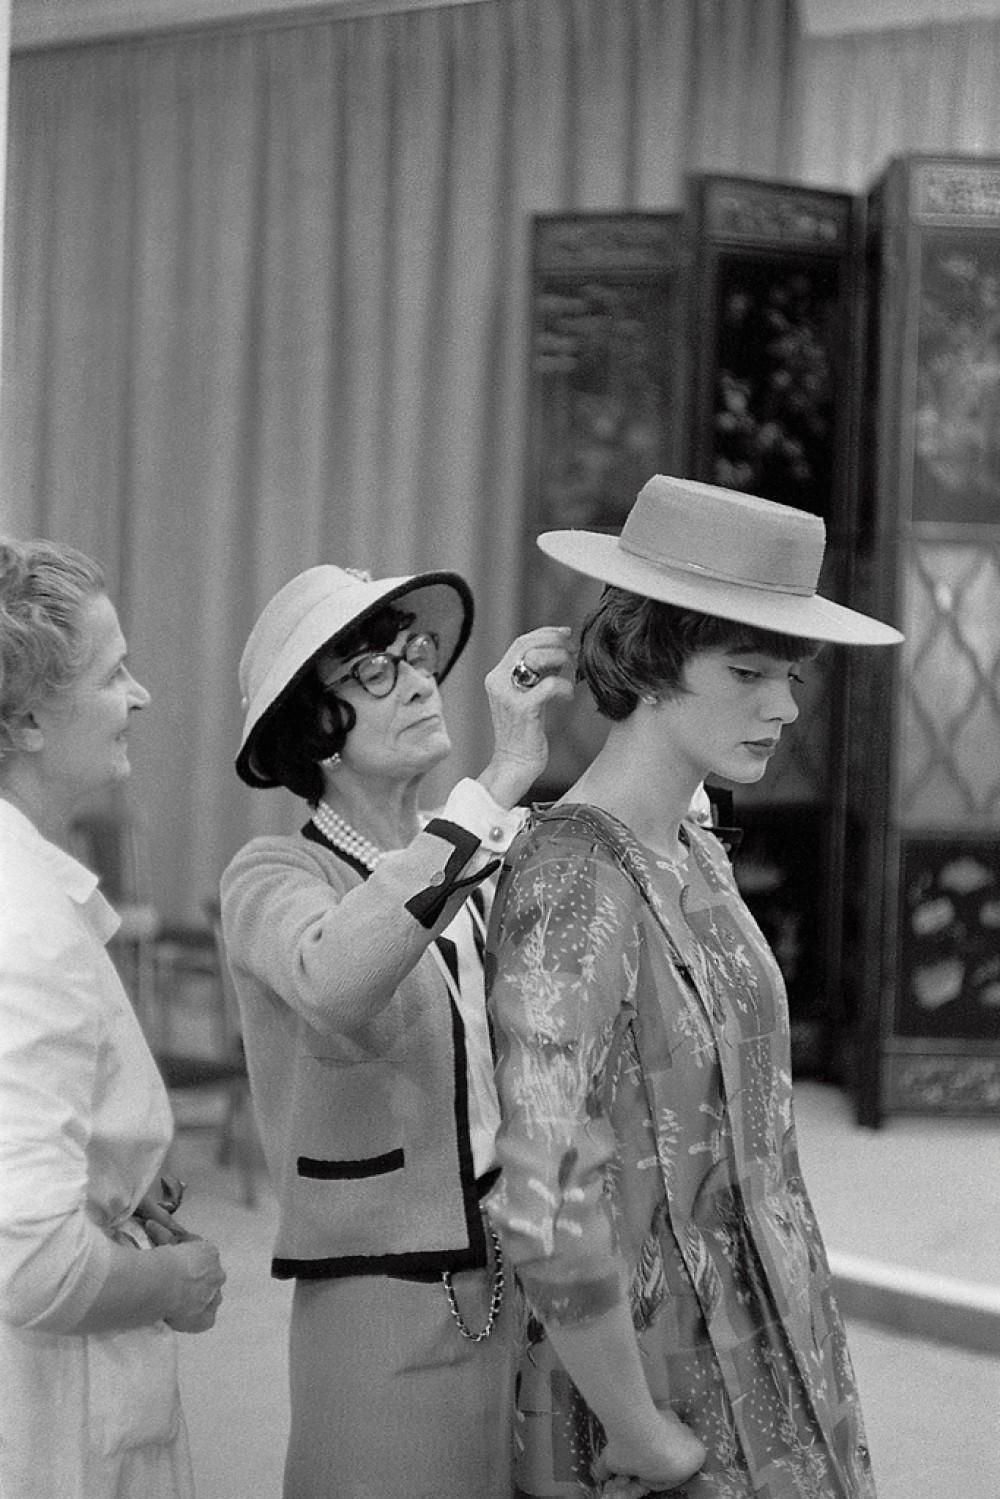 Never-before-published snaps of Coco Chanel in this new book. Click on the image to read more.